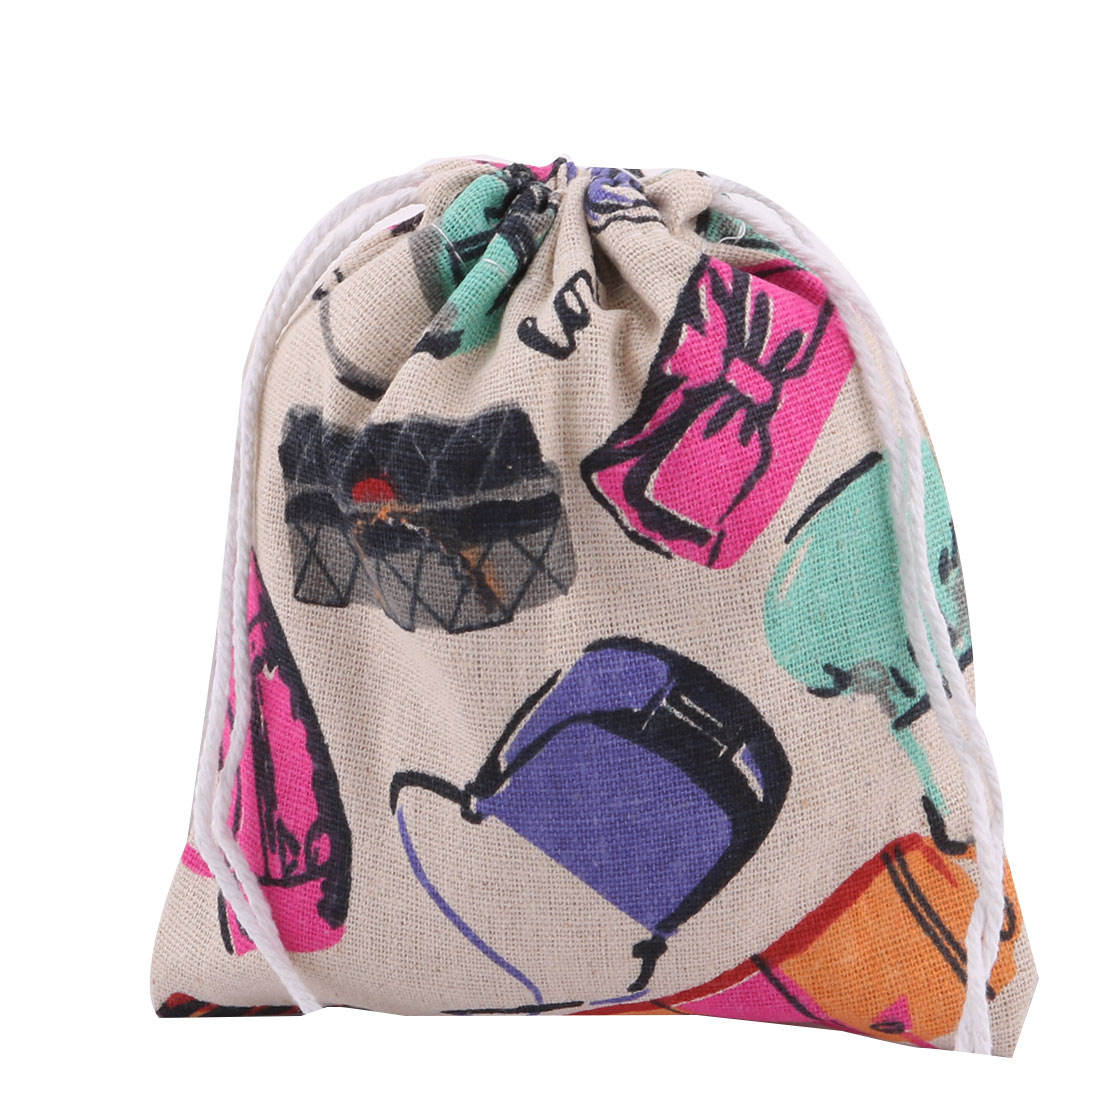 Student Cotton Linen Jewelry Stationery Holder Drawstring Bag Multicolor 2 Pcs - image 3 de 5